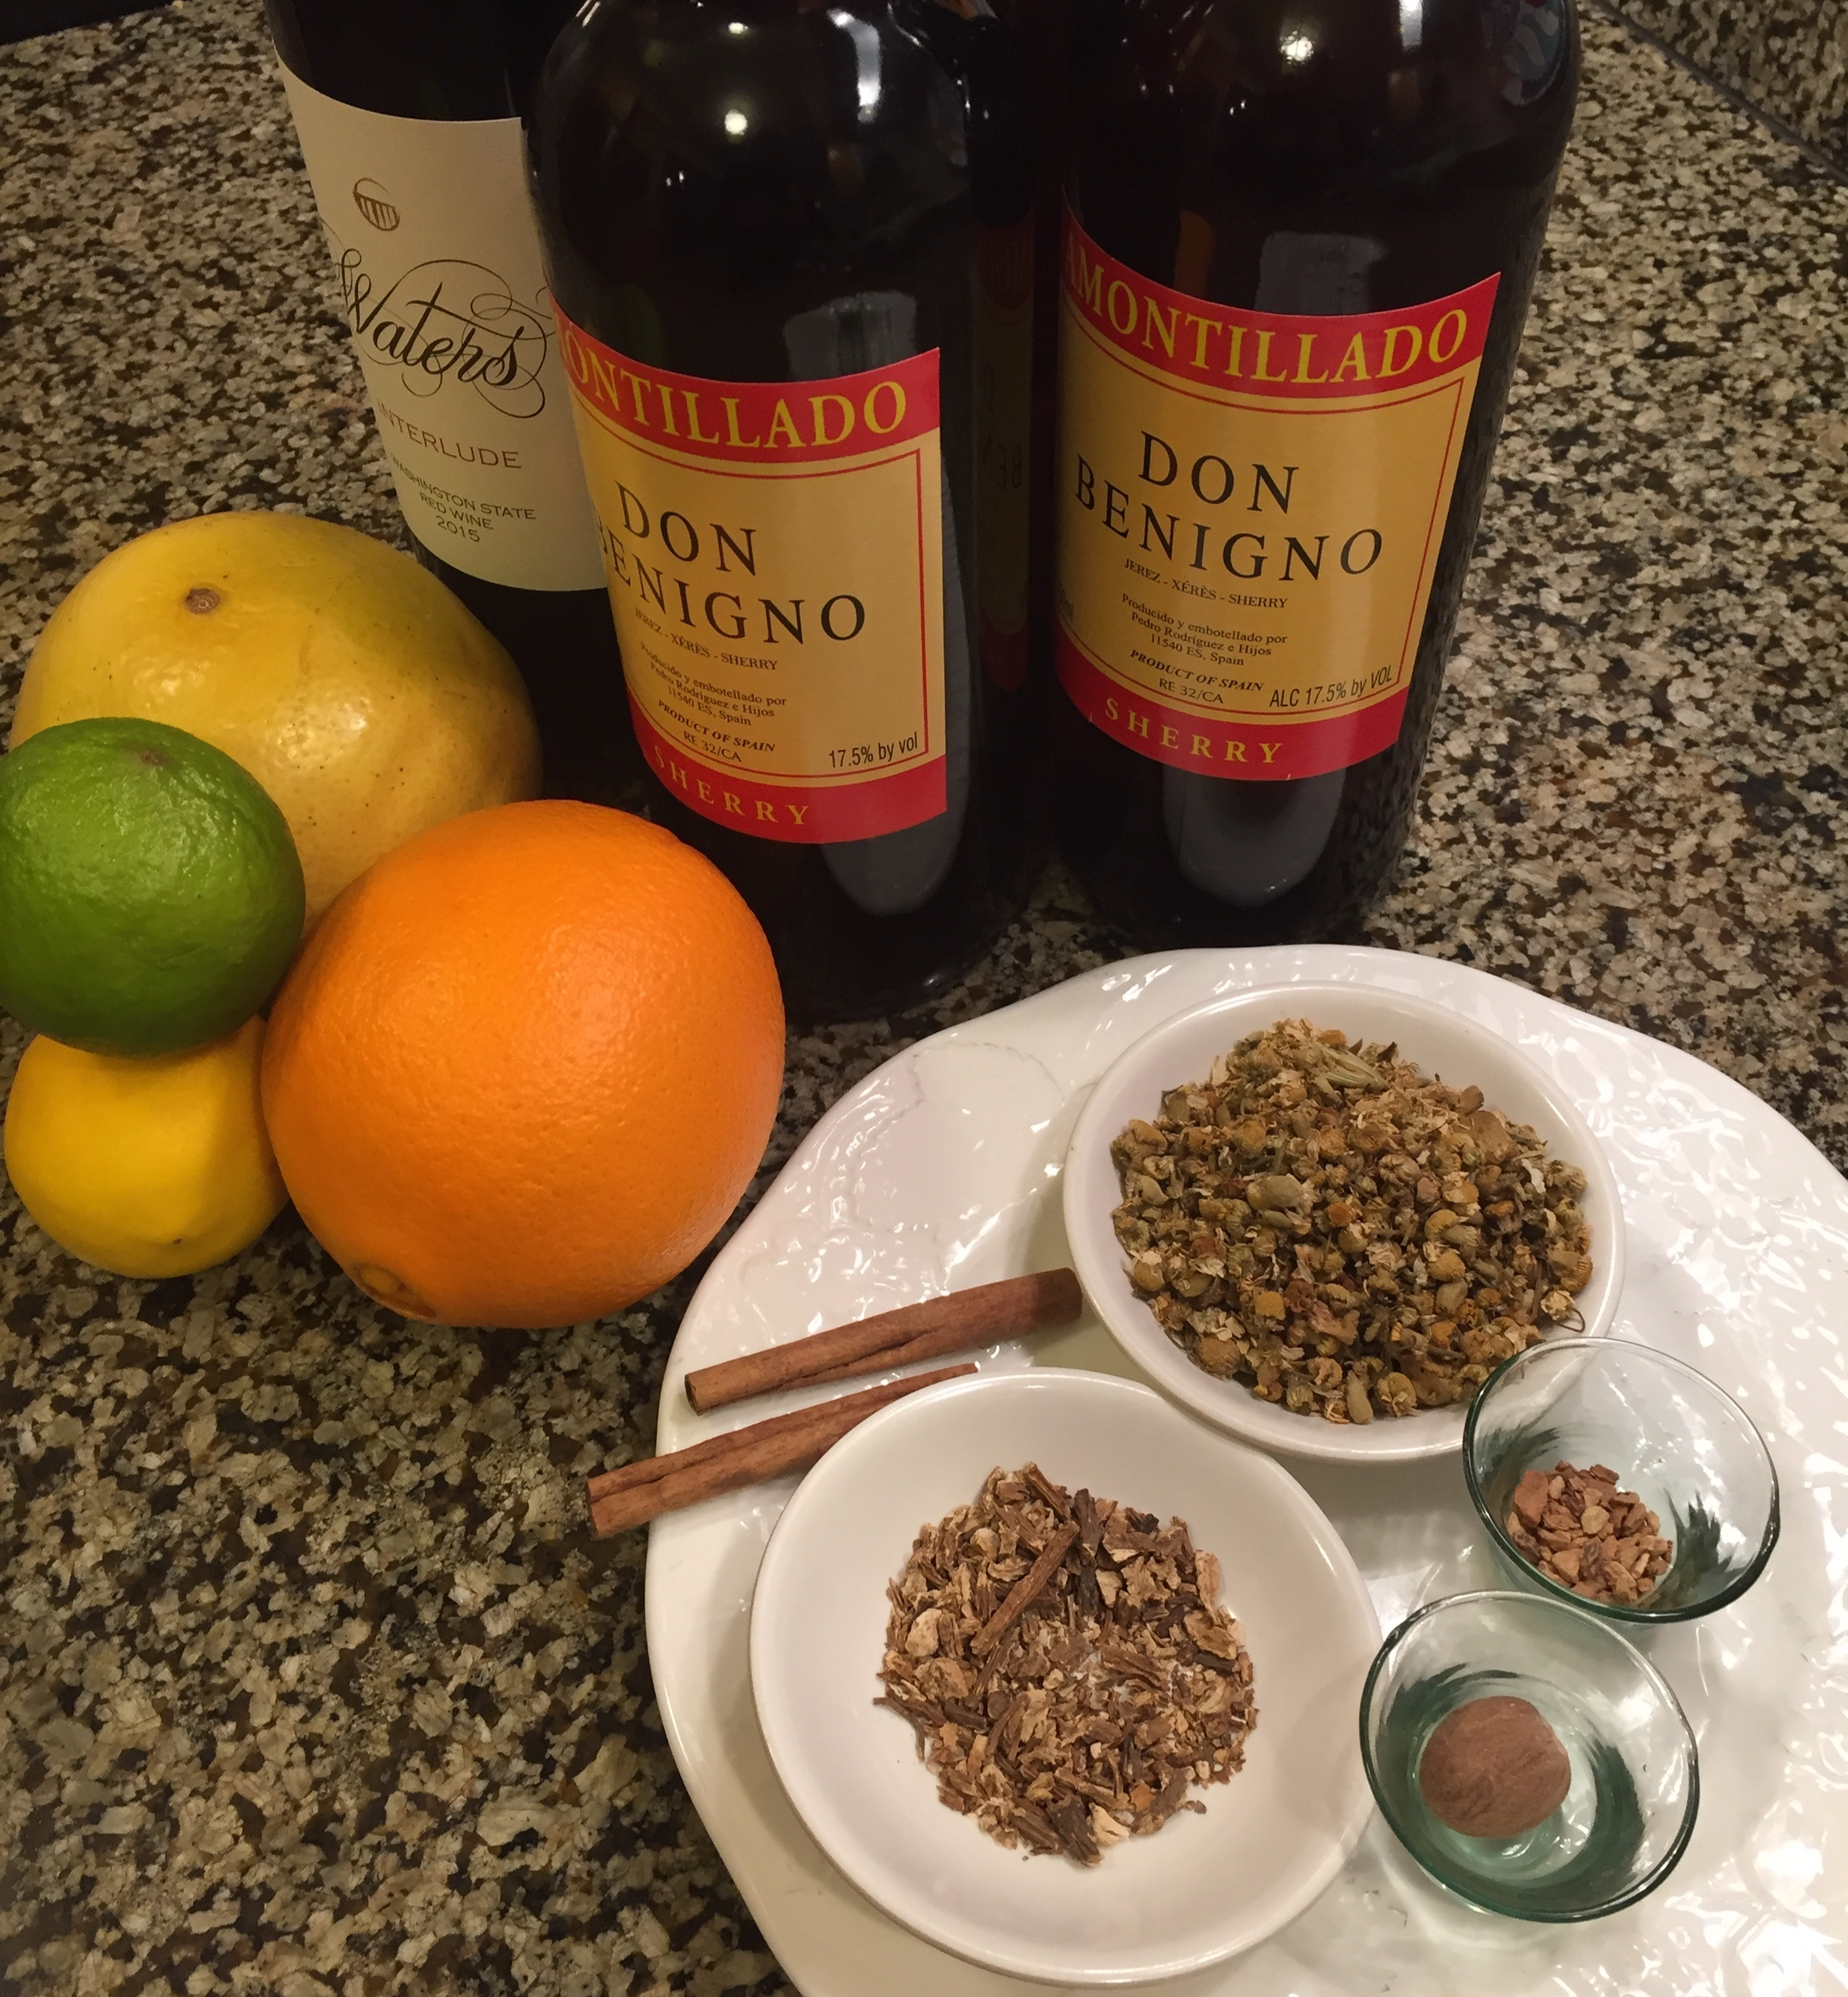 Tinto (house made red vermouth) ingredients include dried chamomile in the top bowl, angelica root in the lower bowl and gentian root and nutmeg to the right.